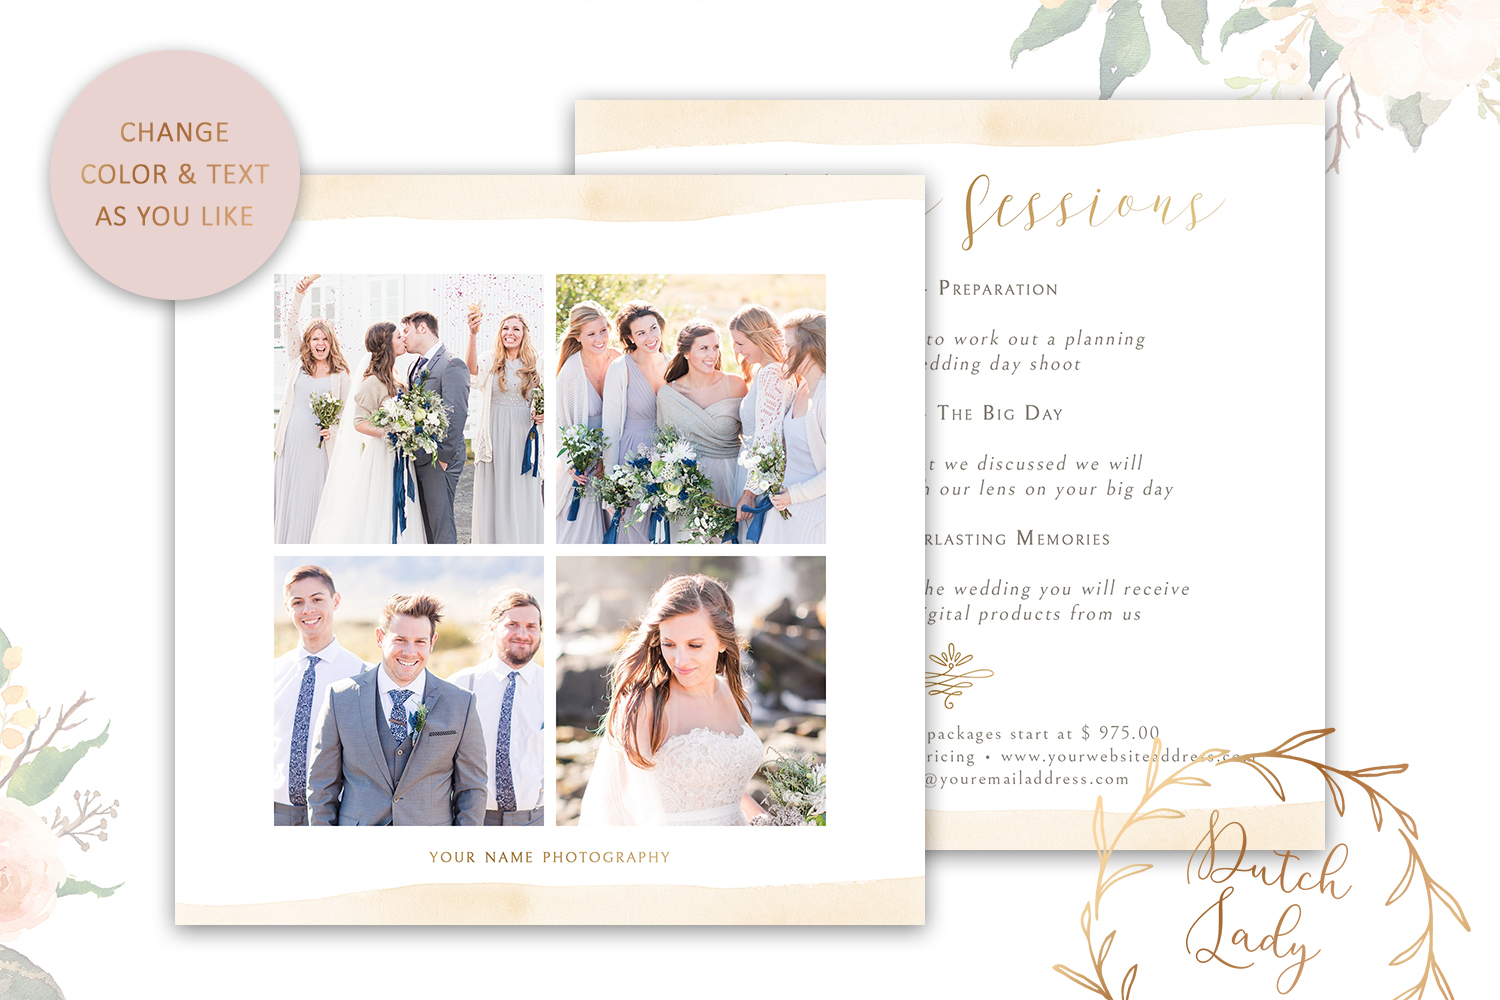 PSD Wedding Photo Session Advertising Card Template #4 example image 4